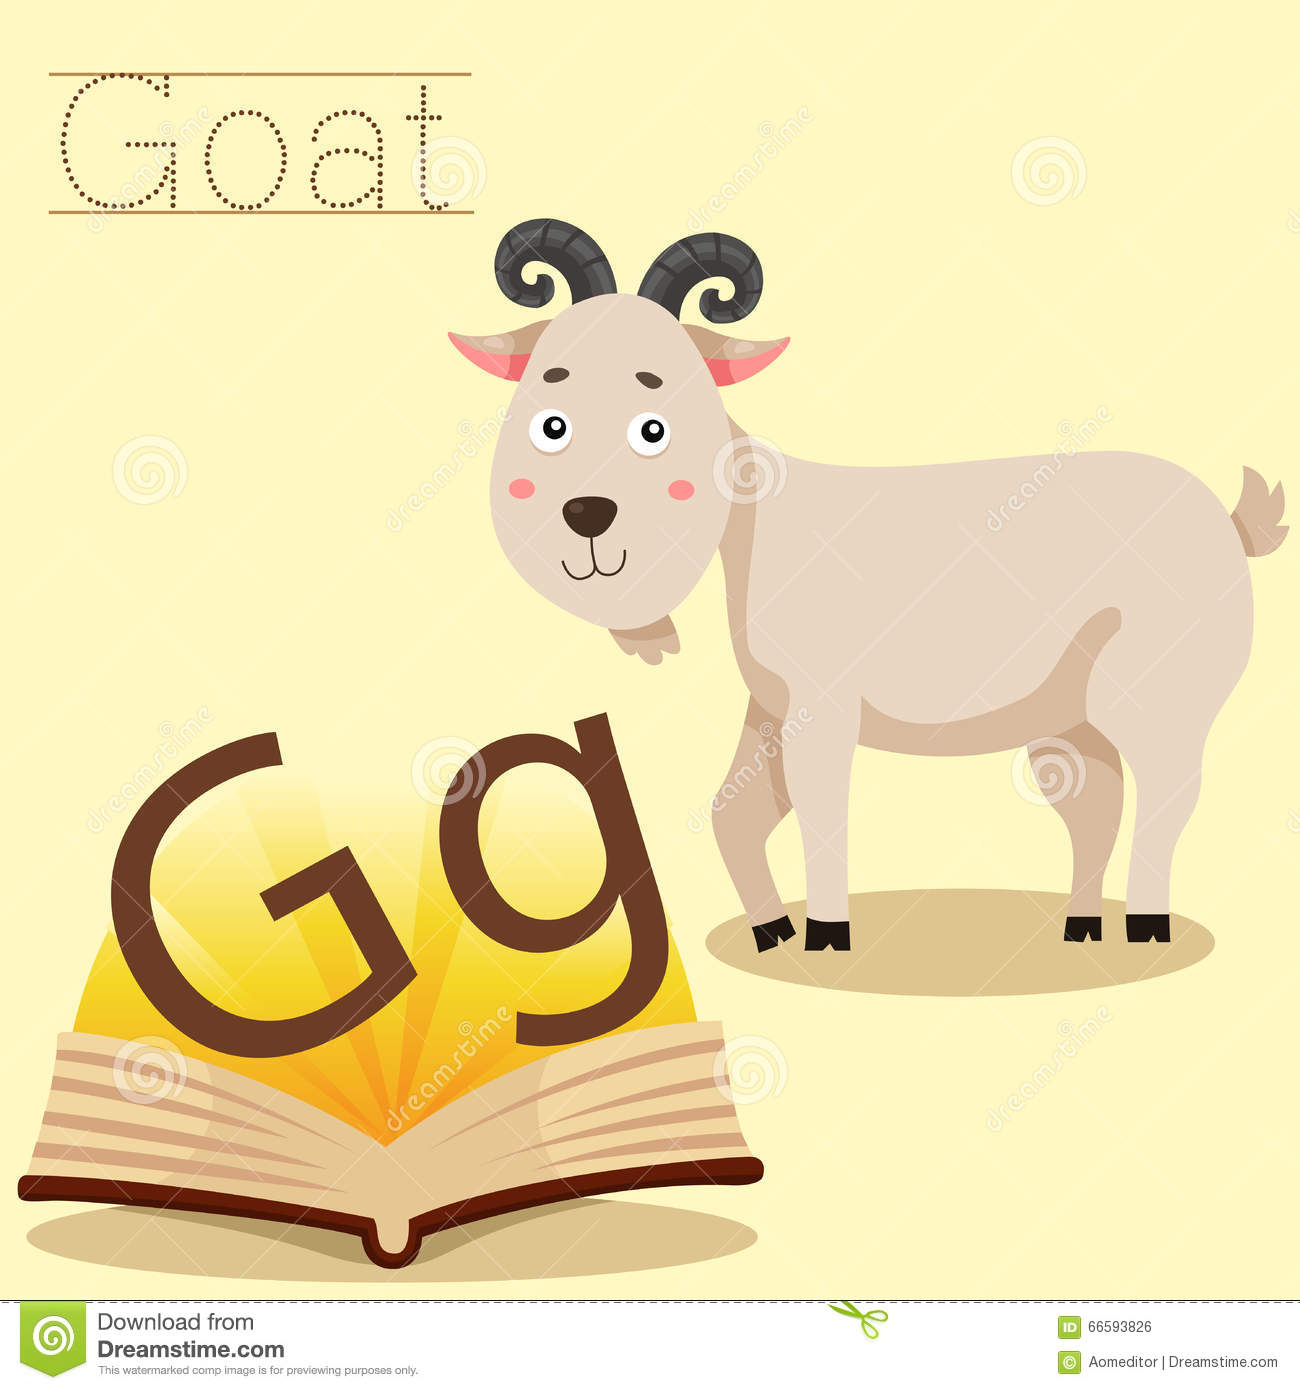 Illustrator Of G For Goat Vocabulary Stock Vector